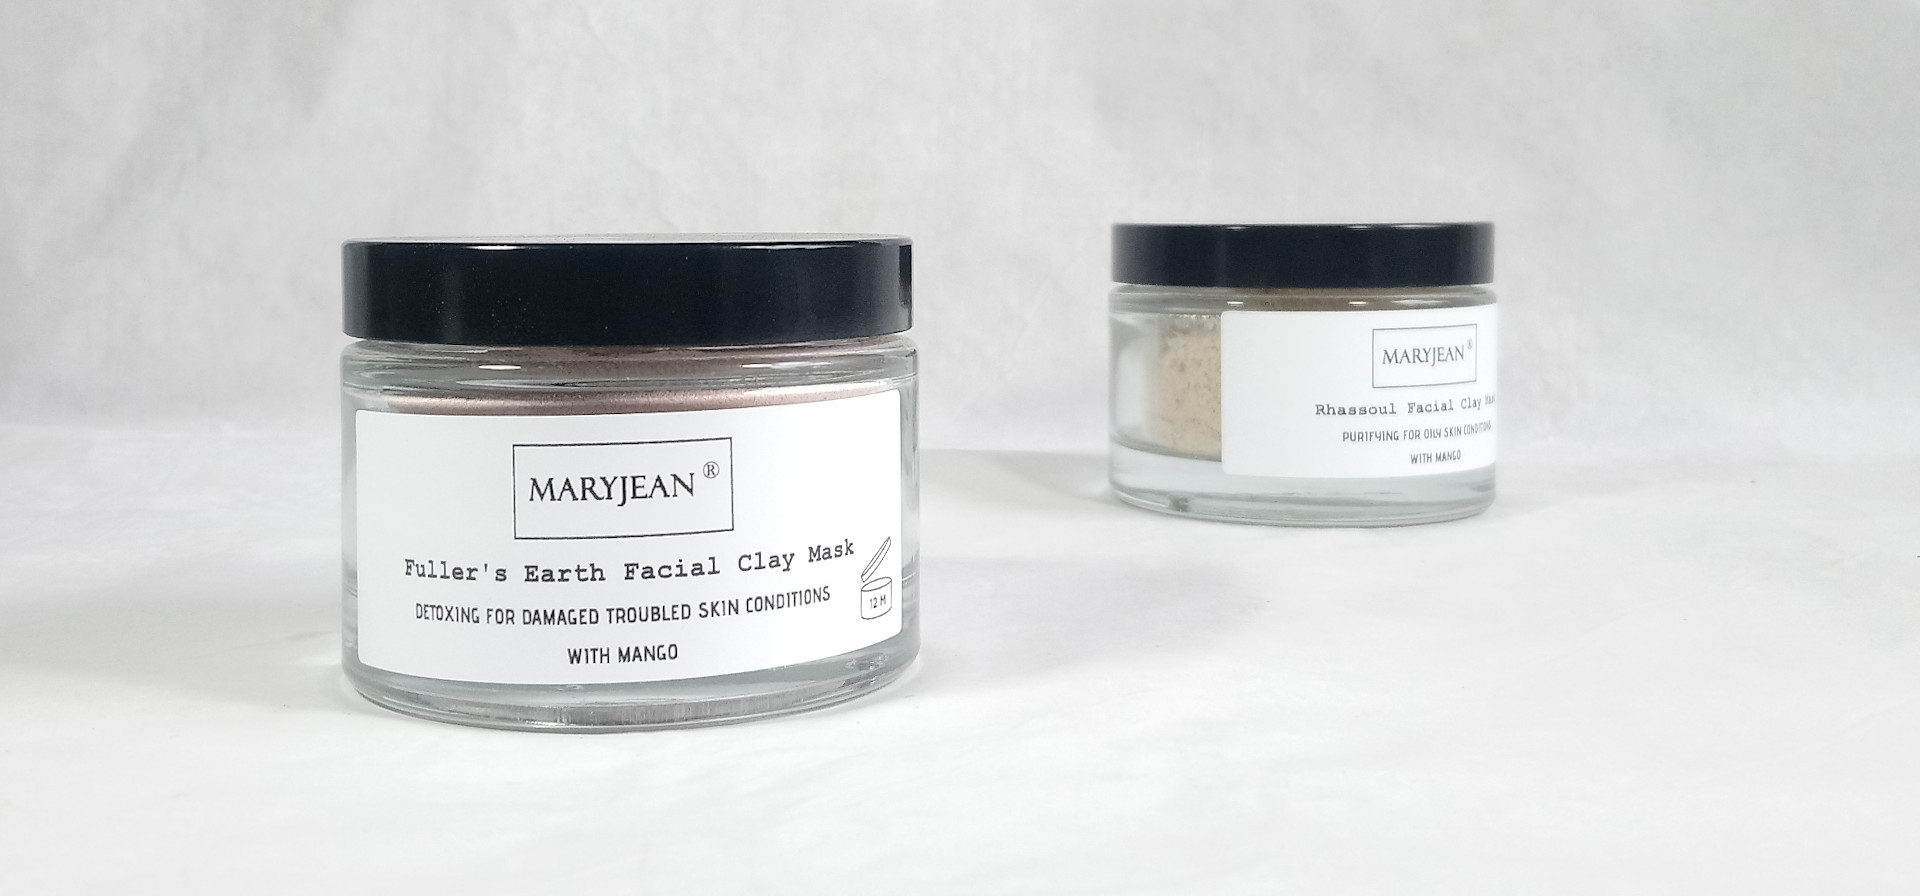 Detoxing Fullers Earth Clay Facial Mask For Damaged Troubled Skin Conditions With Mango en_GB